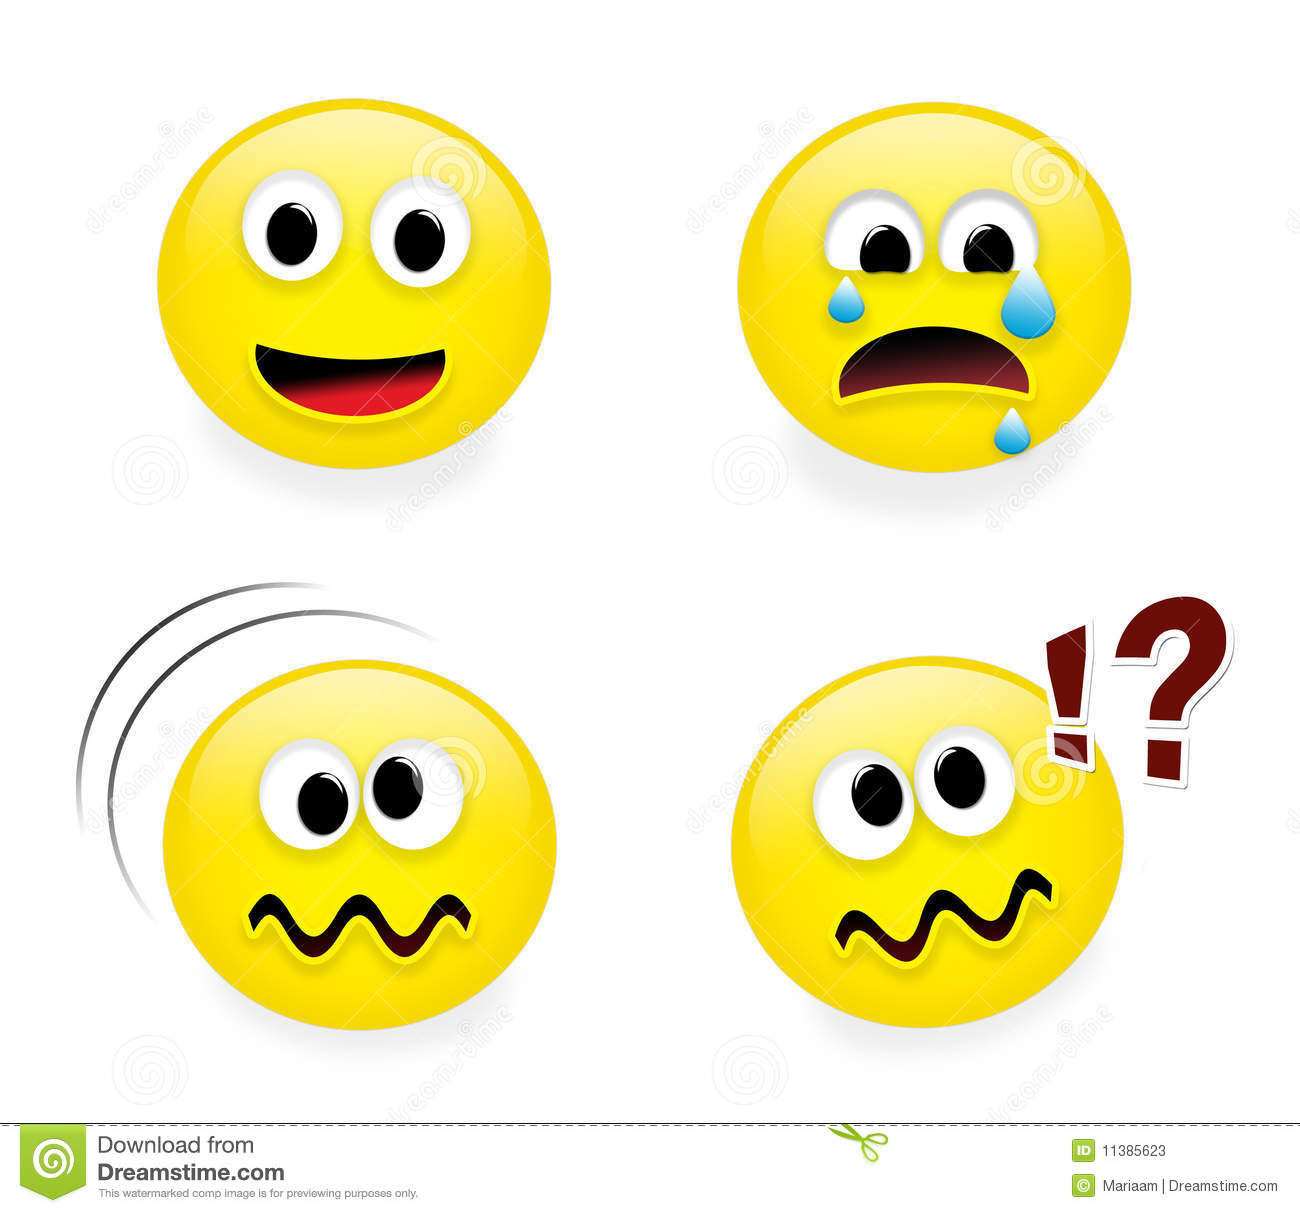 Set of funny emoticons on white background, part 2.